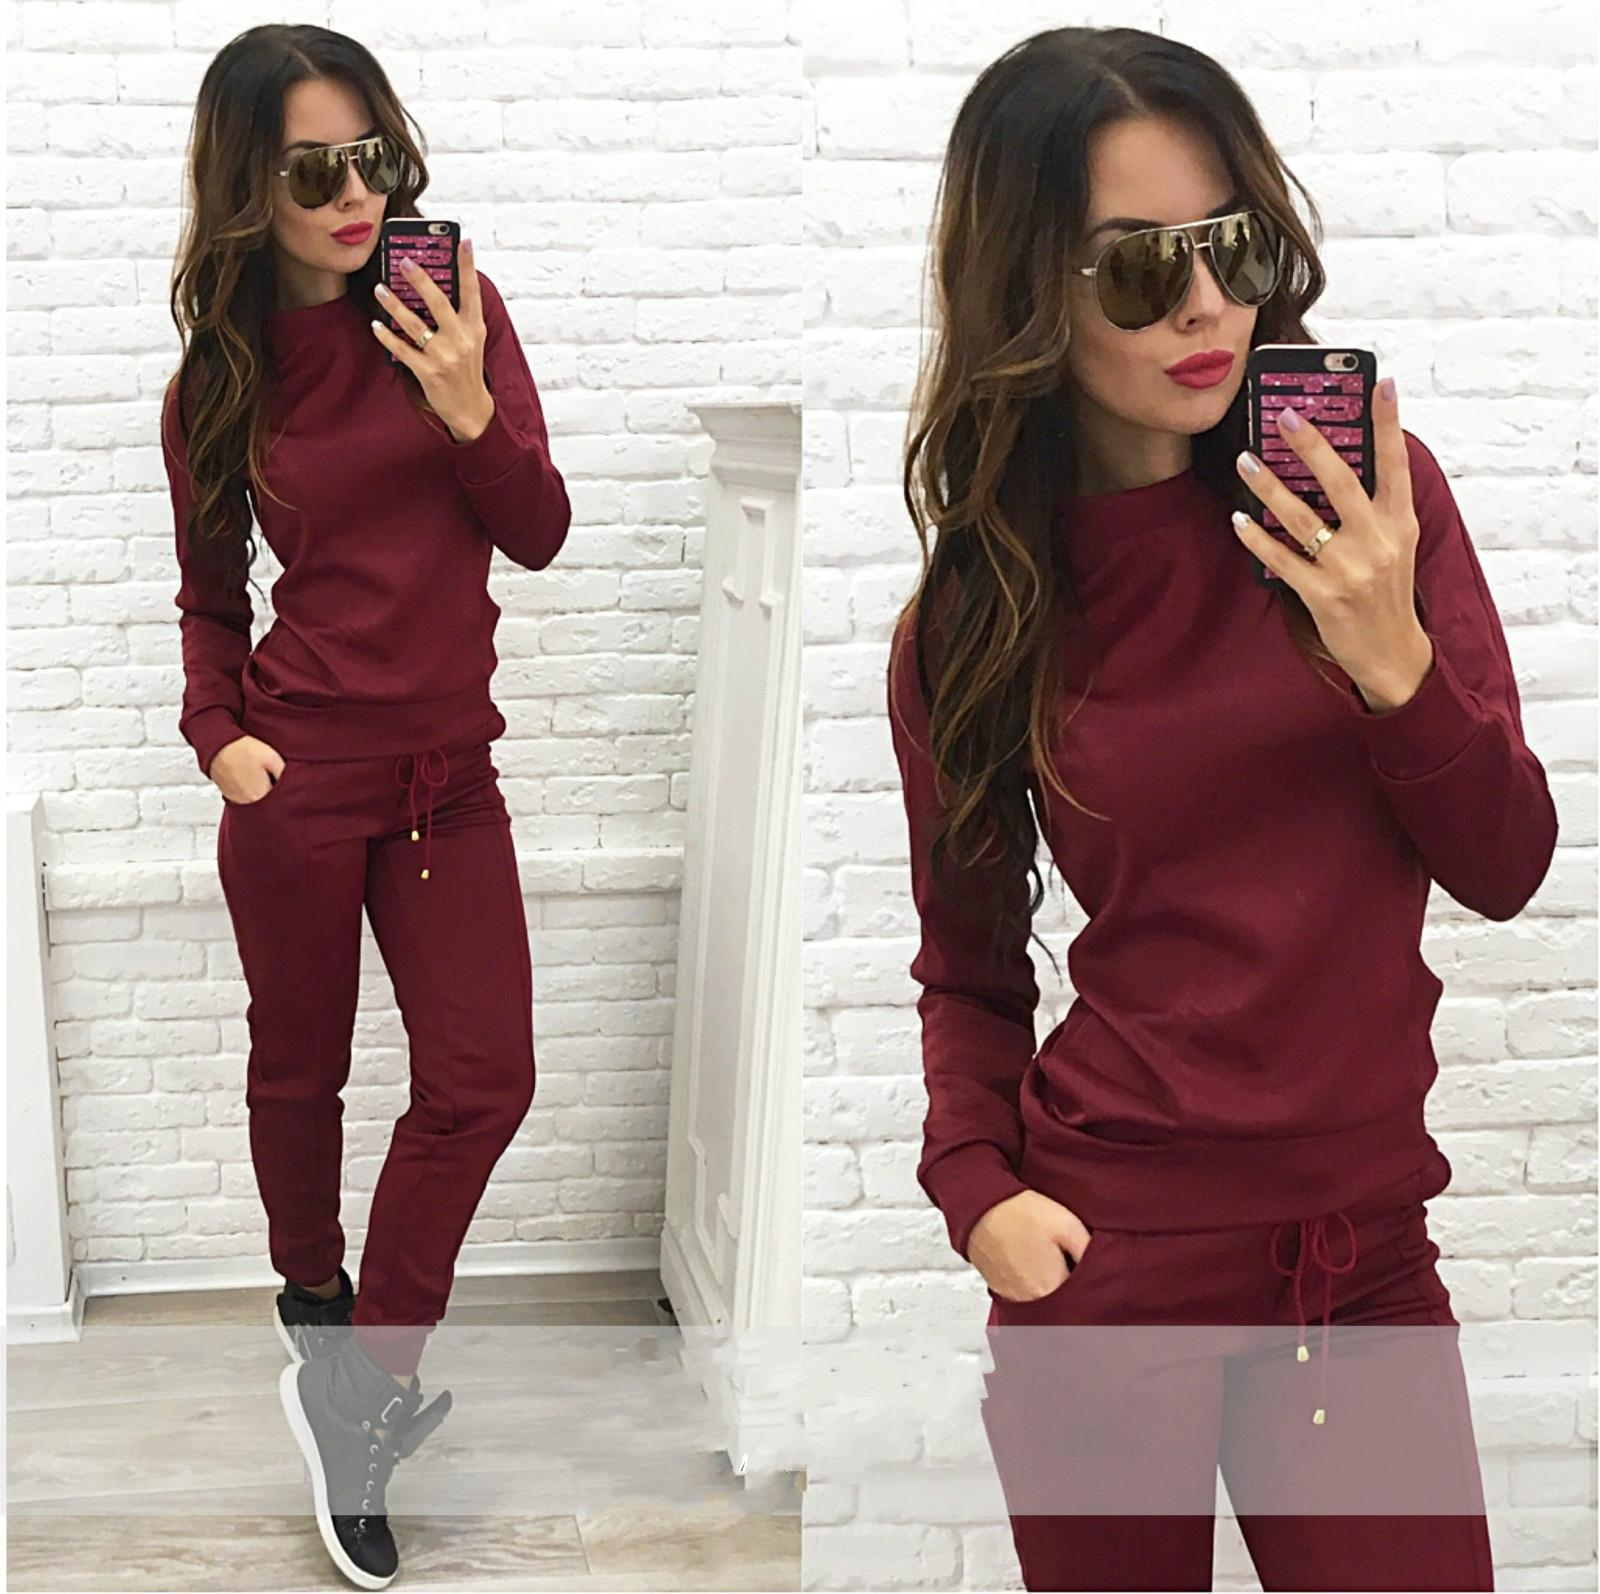 Solid Brown 2020 New Design Fashion Hot Sale Suit Set Women Tracksuit Two-piece Style Outfit Sweatshirt Sport Wear